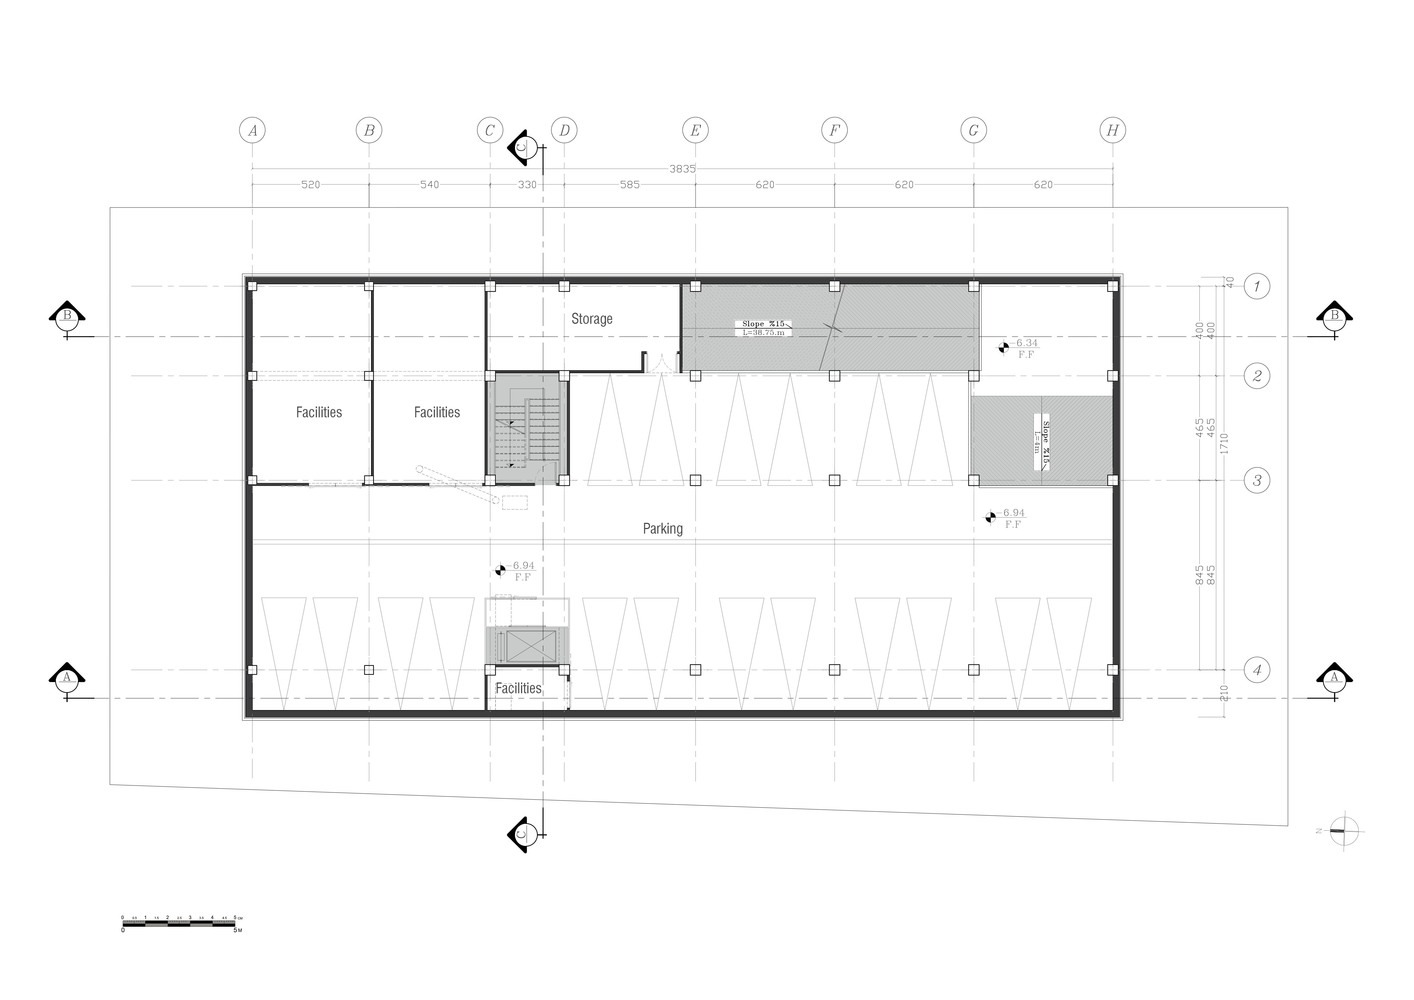 New Wave Architecture Designs Sustainable Office Building For Turbosealtech  In Iran,Second Basement Floor Plan